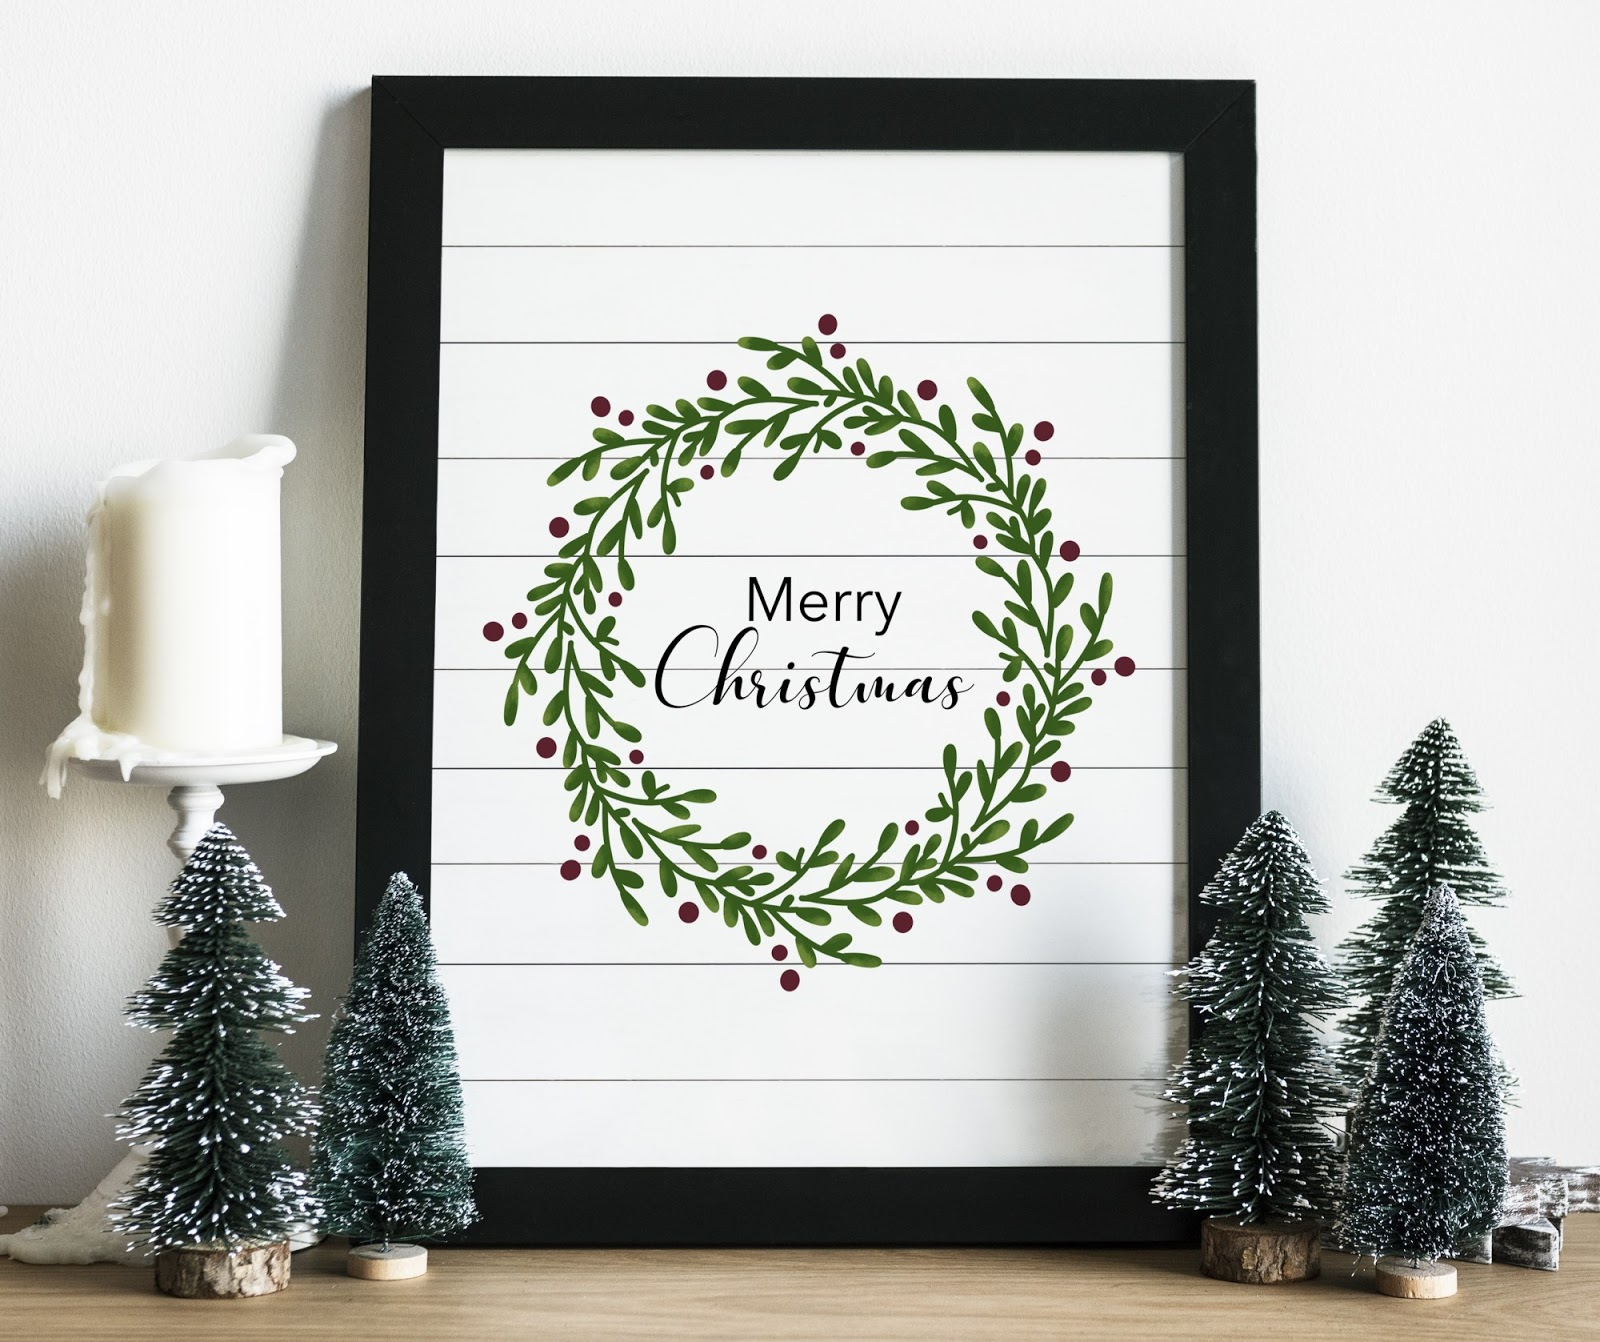 Shiplap farmhouse free Christmas wreath printable